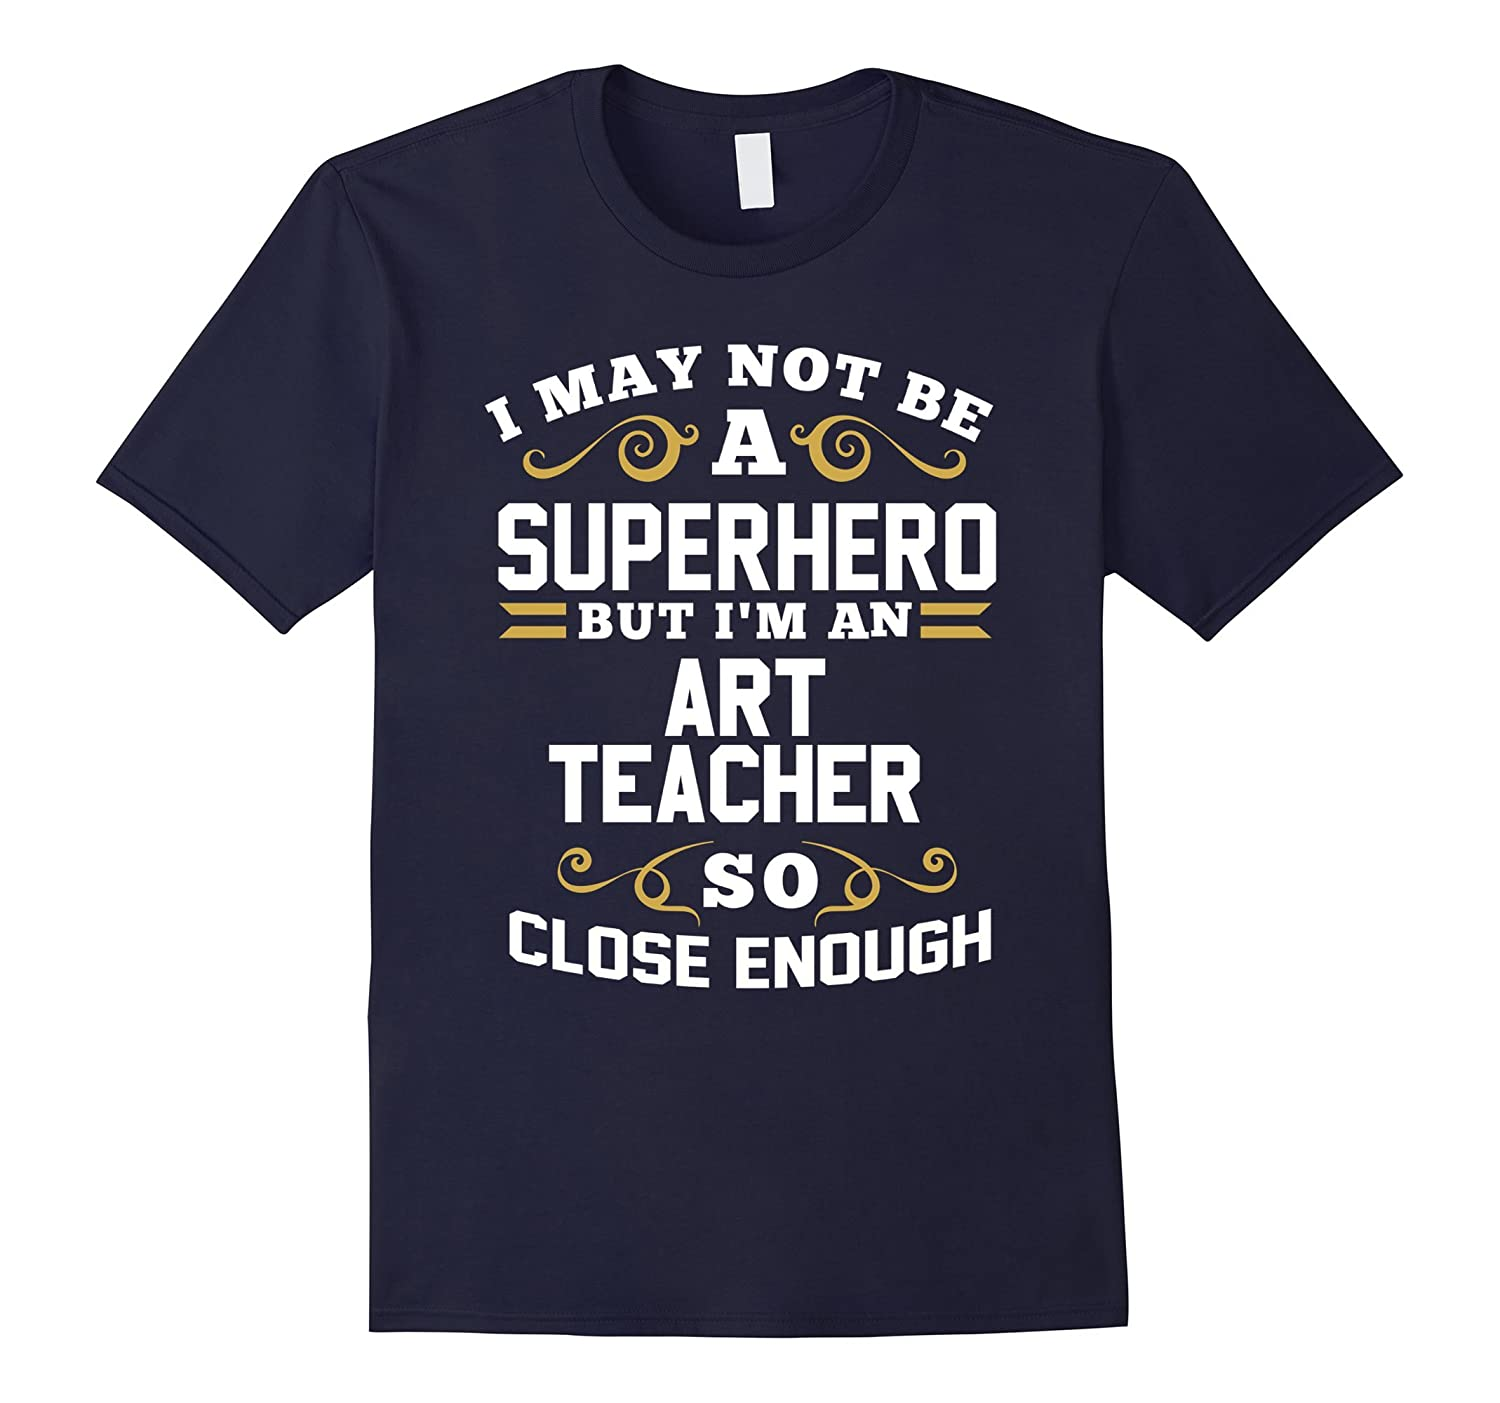 Art Teacher Shirt Not Superhero Funny Gift T-Shirt-CD